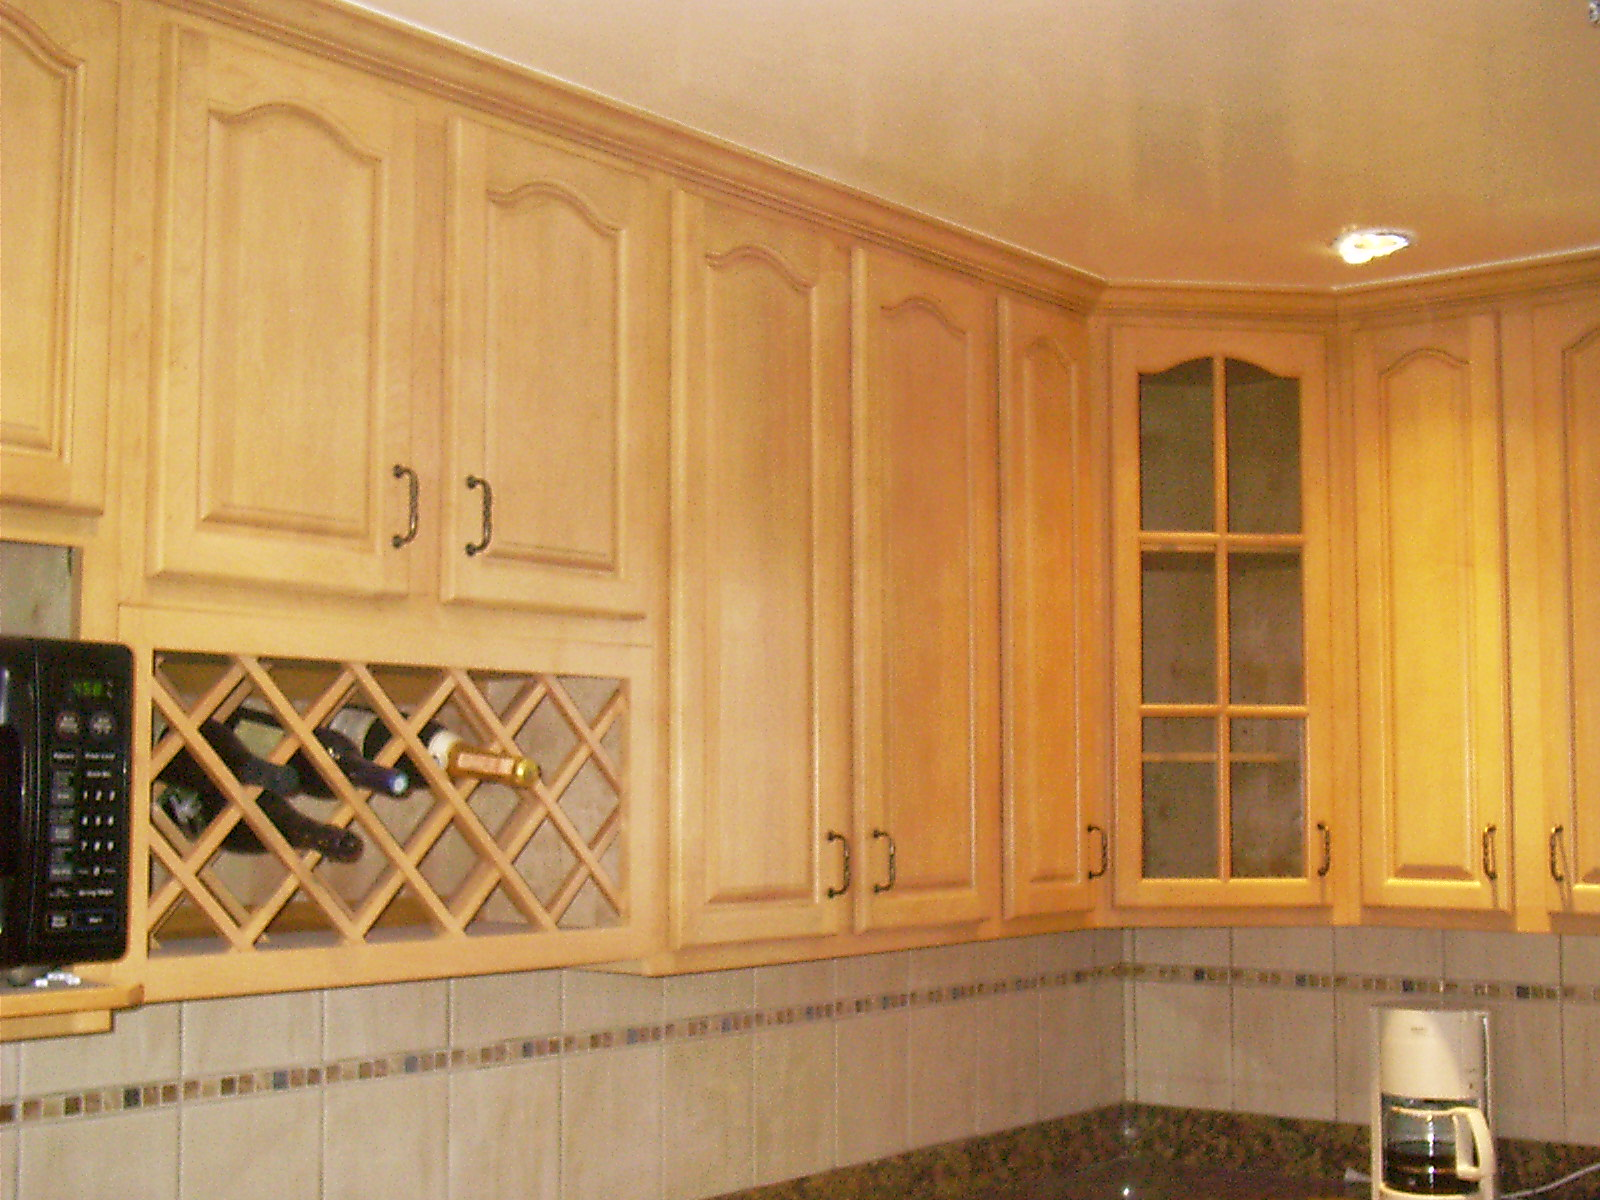 Kitchen Cabinet Warehouse Manassas Va Images Of Maple Cabinet Kitchens Home Design And Decor Reviews